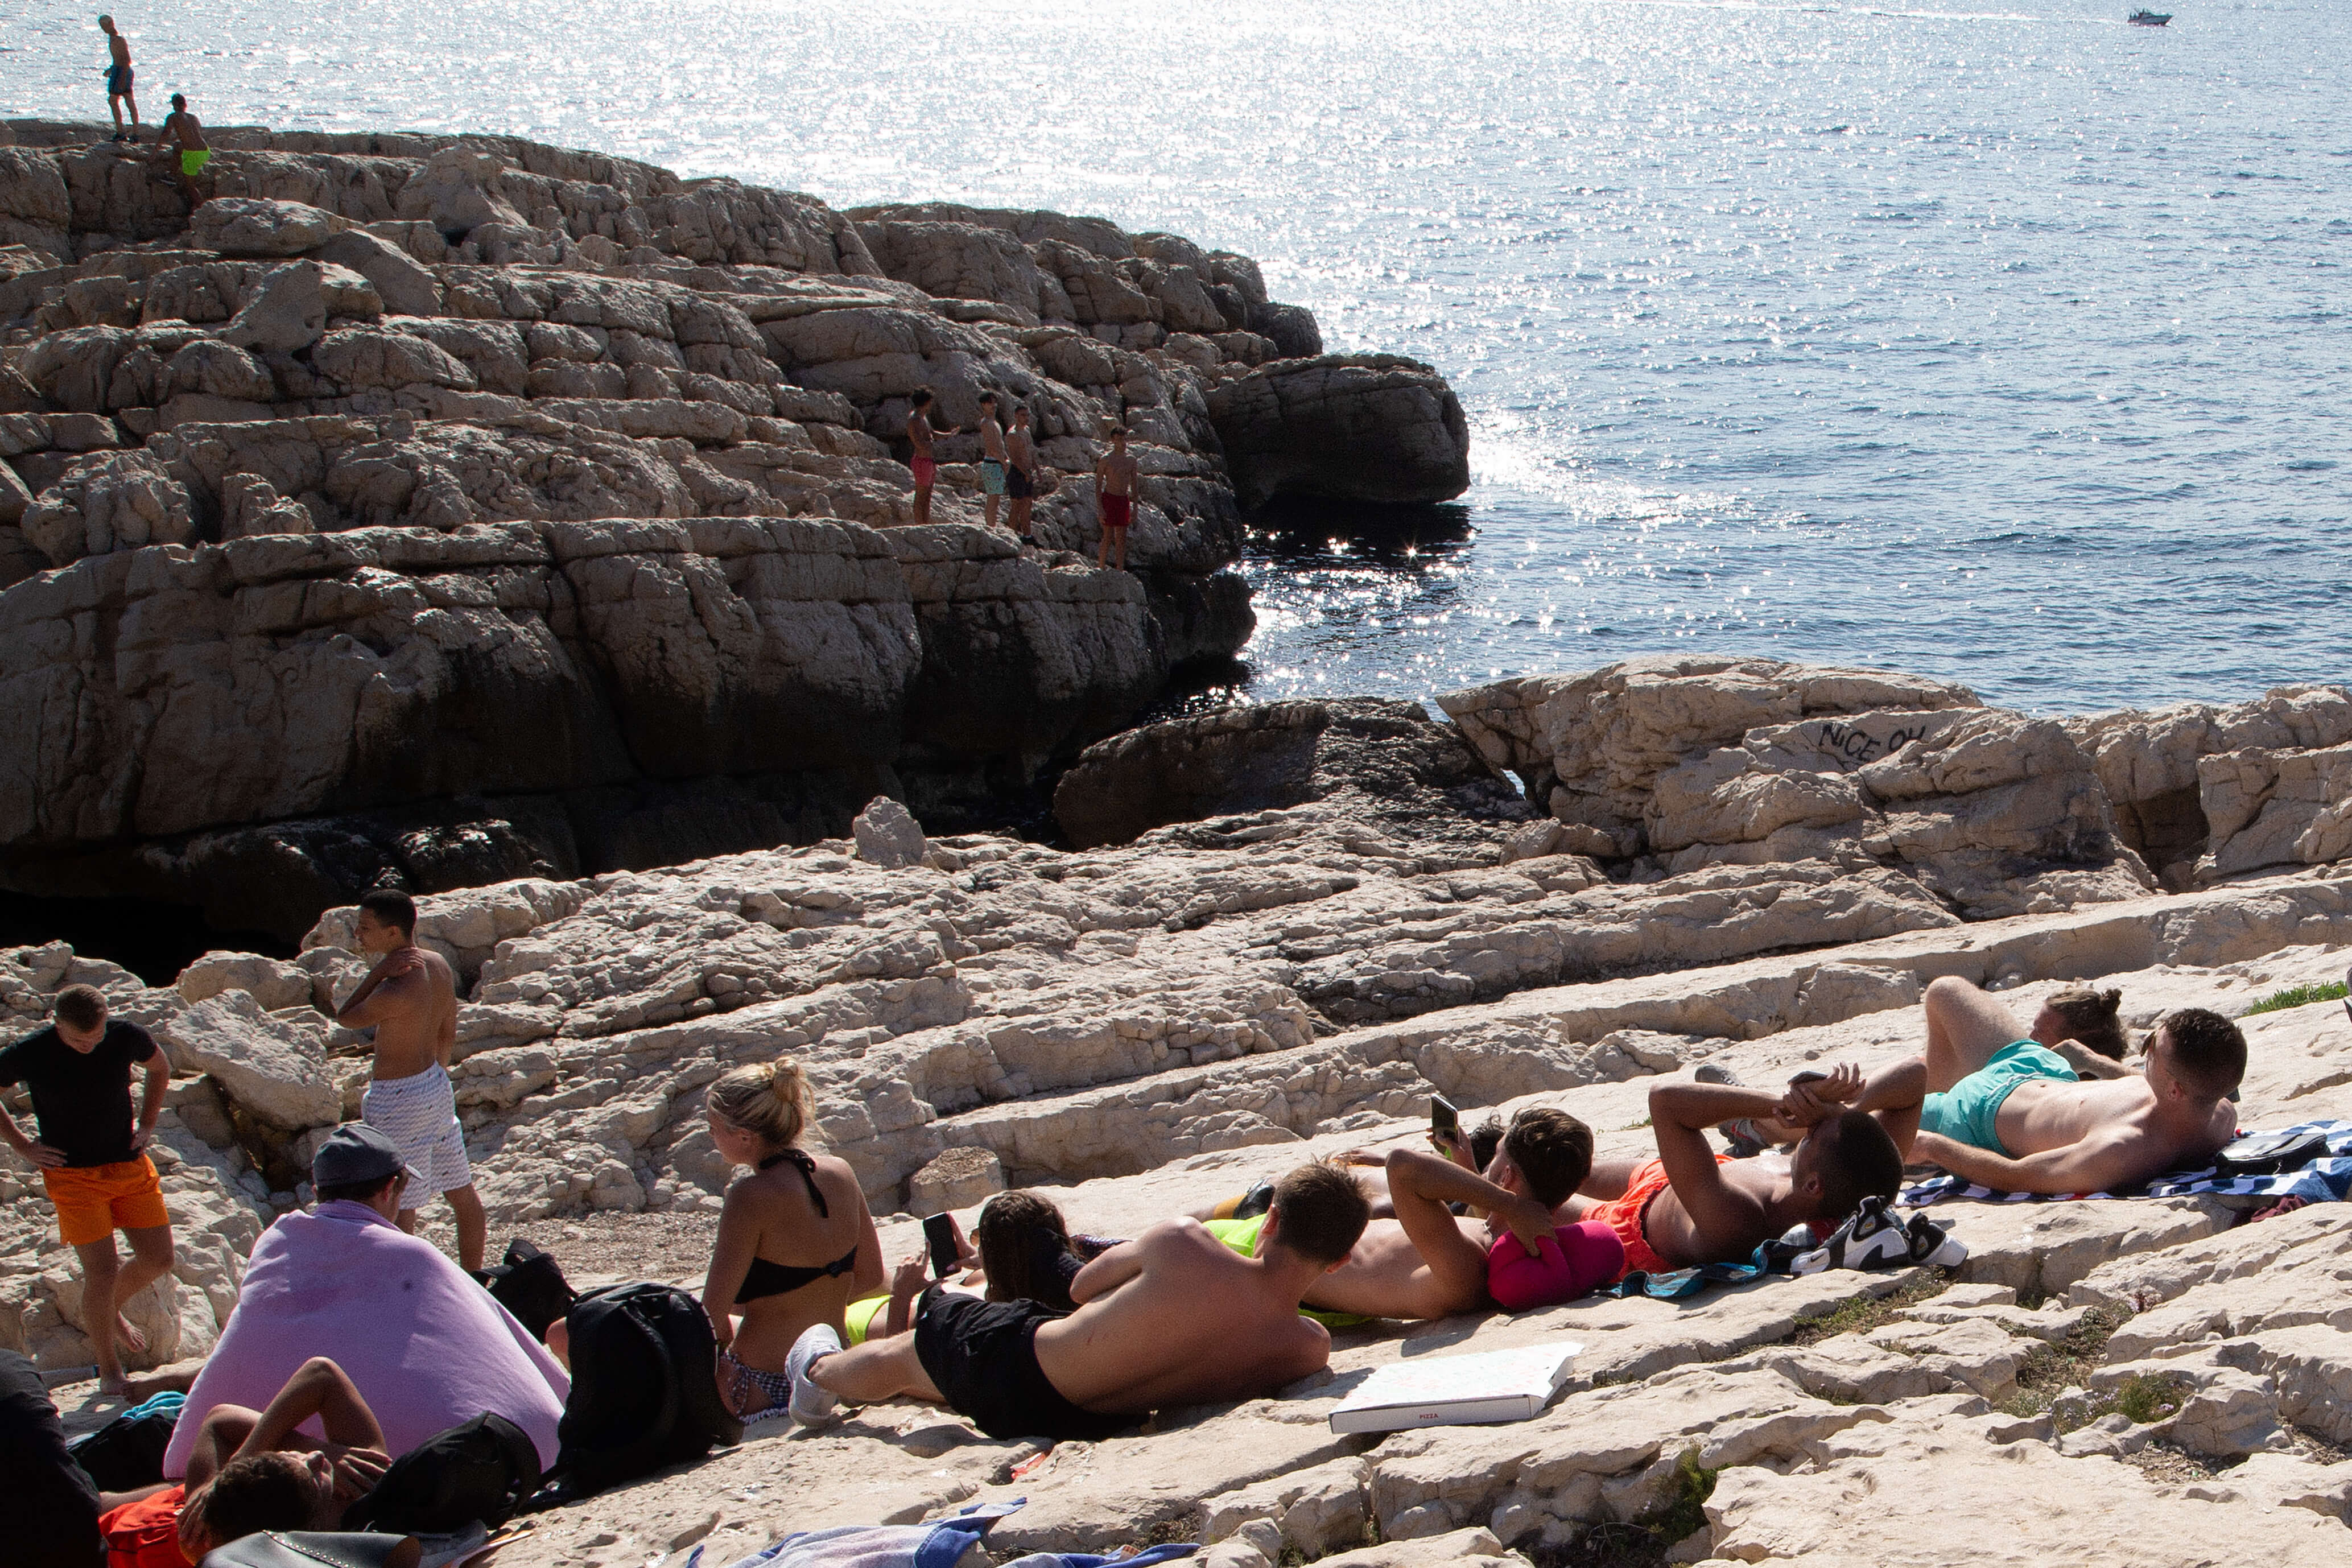 14_calanque_saména_giovanni_di_stefano_photographer_paris_saména_doing_bird_magazine_project_jpg.jpg